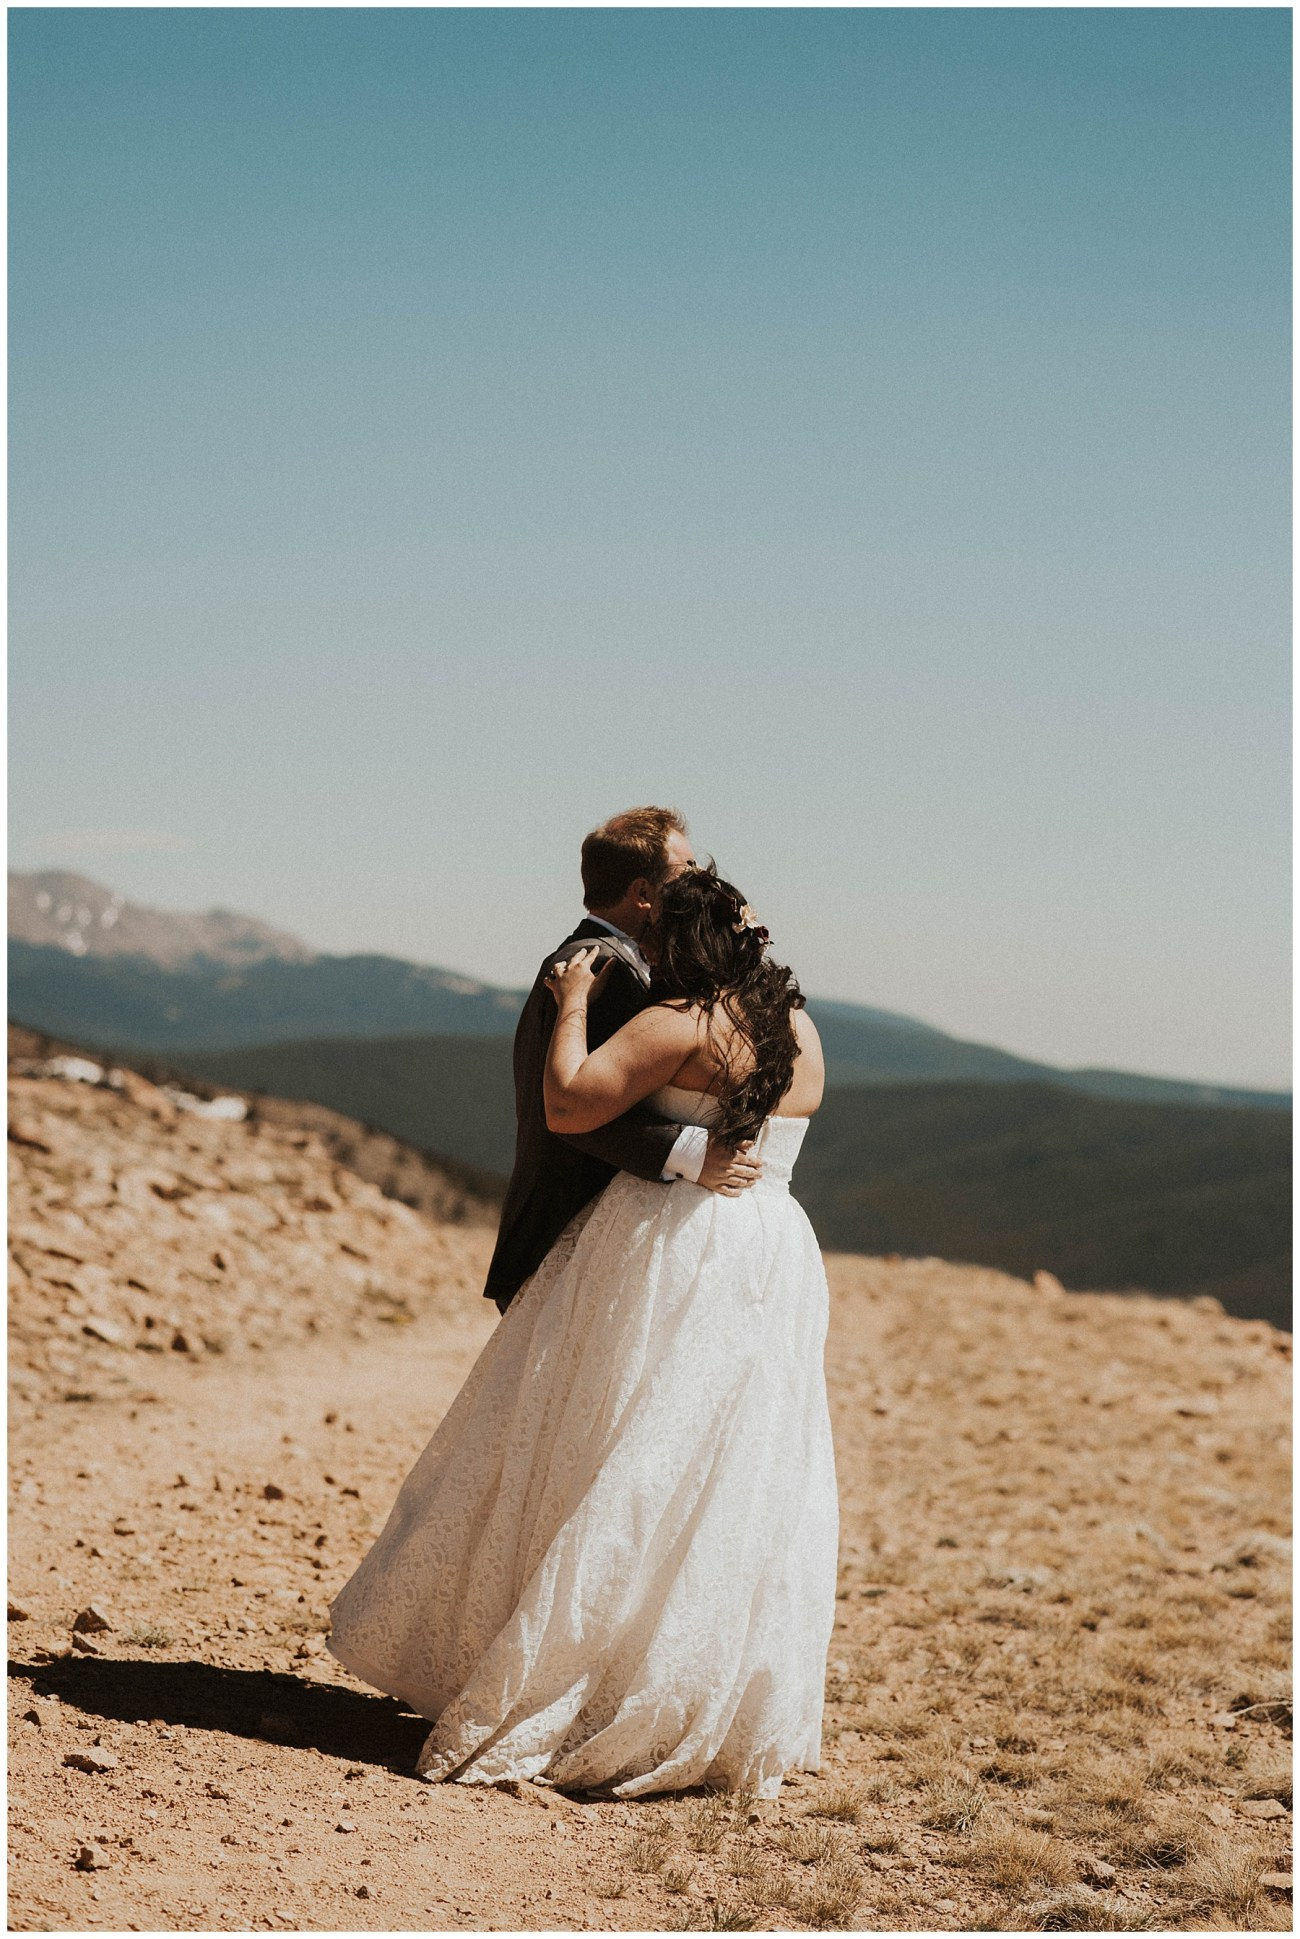 b8e2b4302c8d Ben + Lainee // Desert Colorado Wedding - Lauren F.otography ...